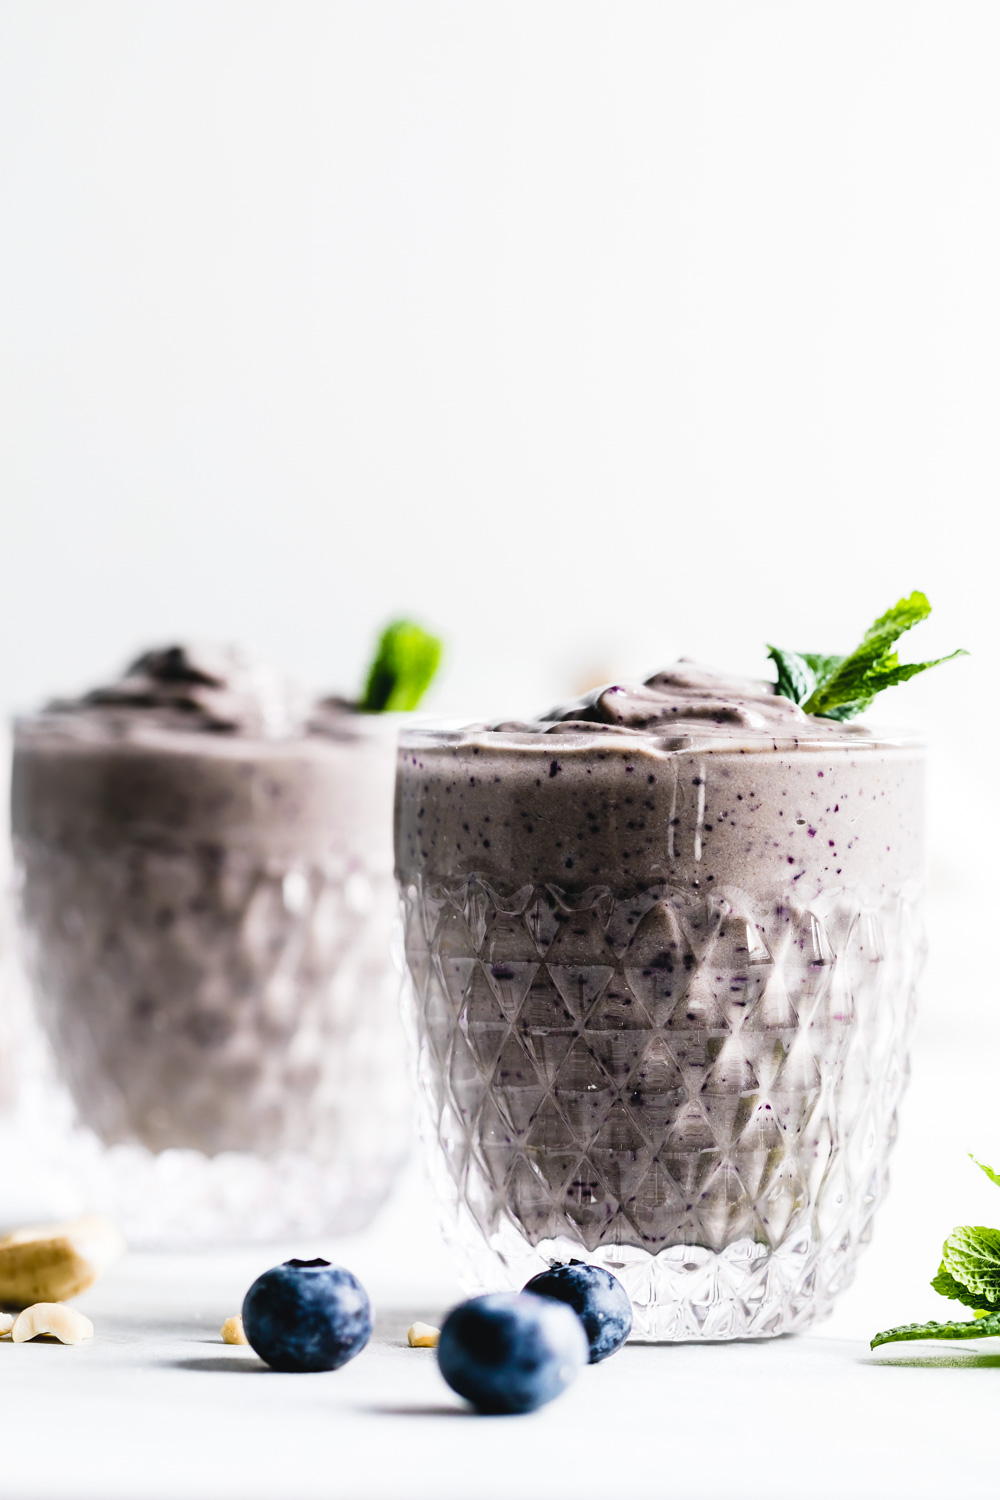 two glasses with blueberry smoothie in a small glass topped with mint leaves on a white marble cuttingboard with a white backdrop and a few blueberries